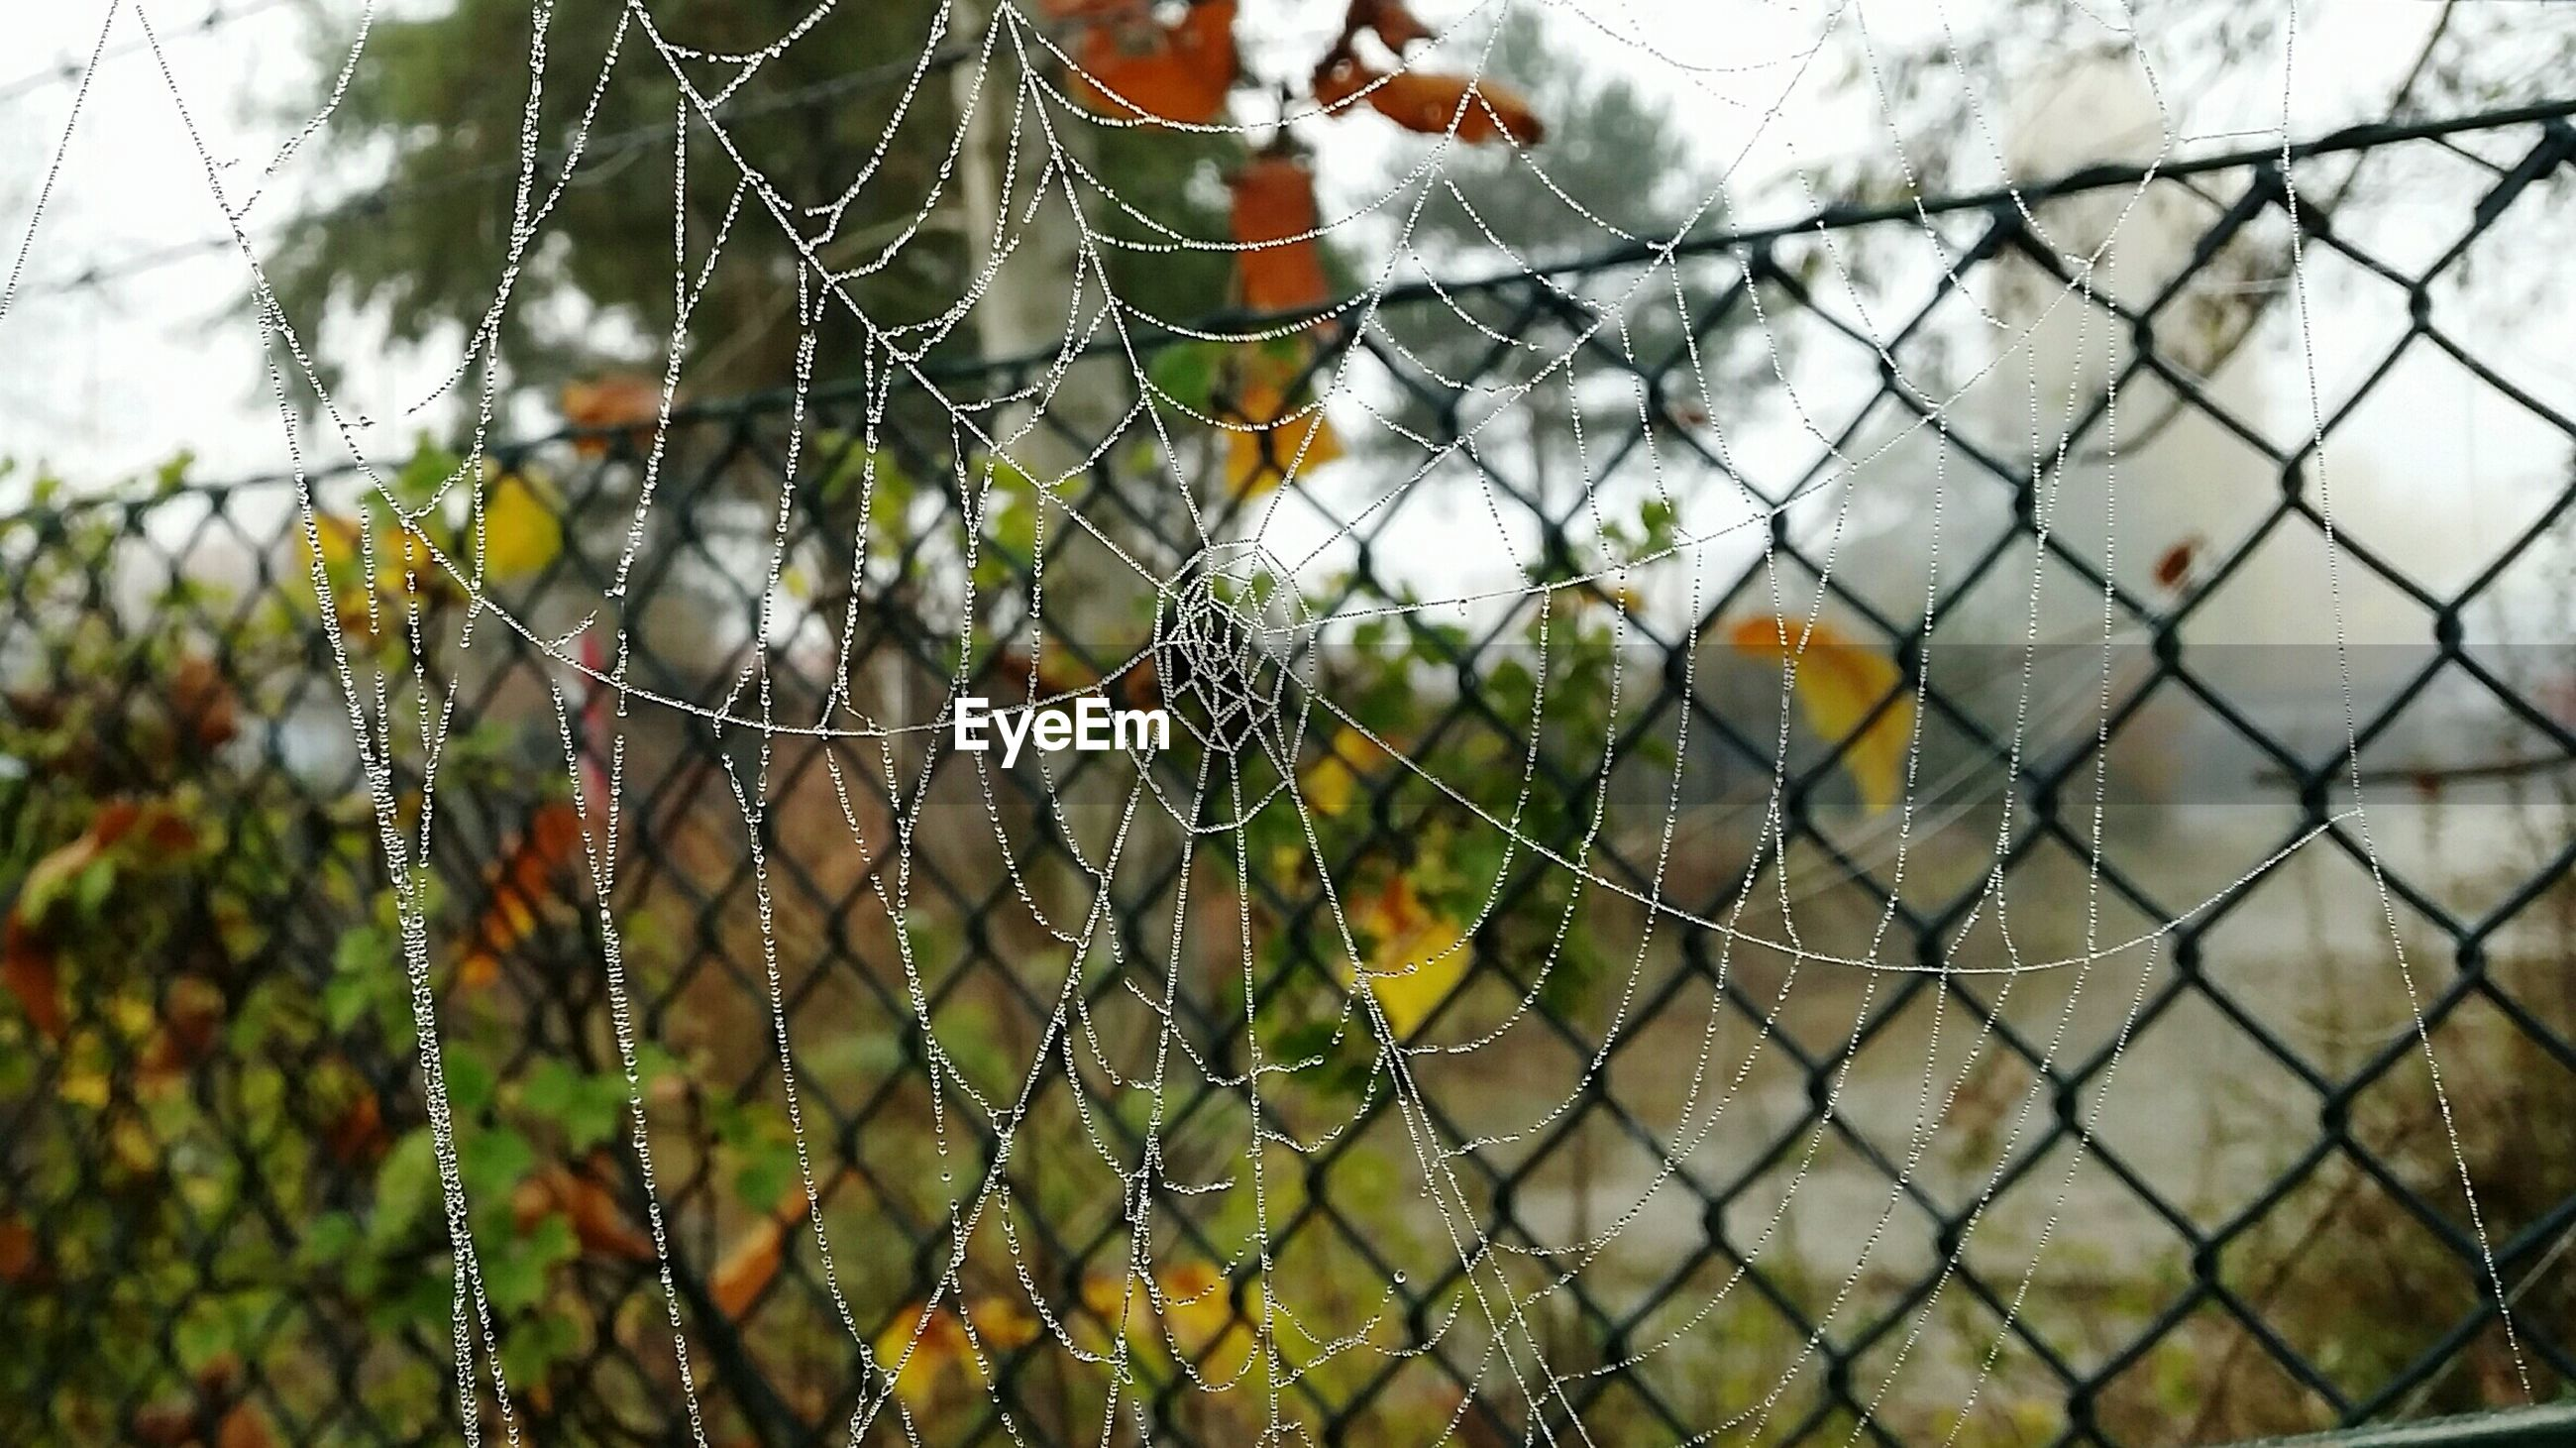 Close-up of frosty spider web against fence during autumn